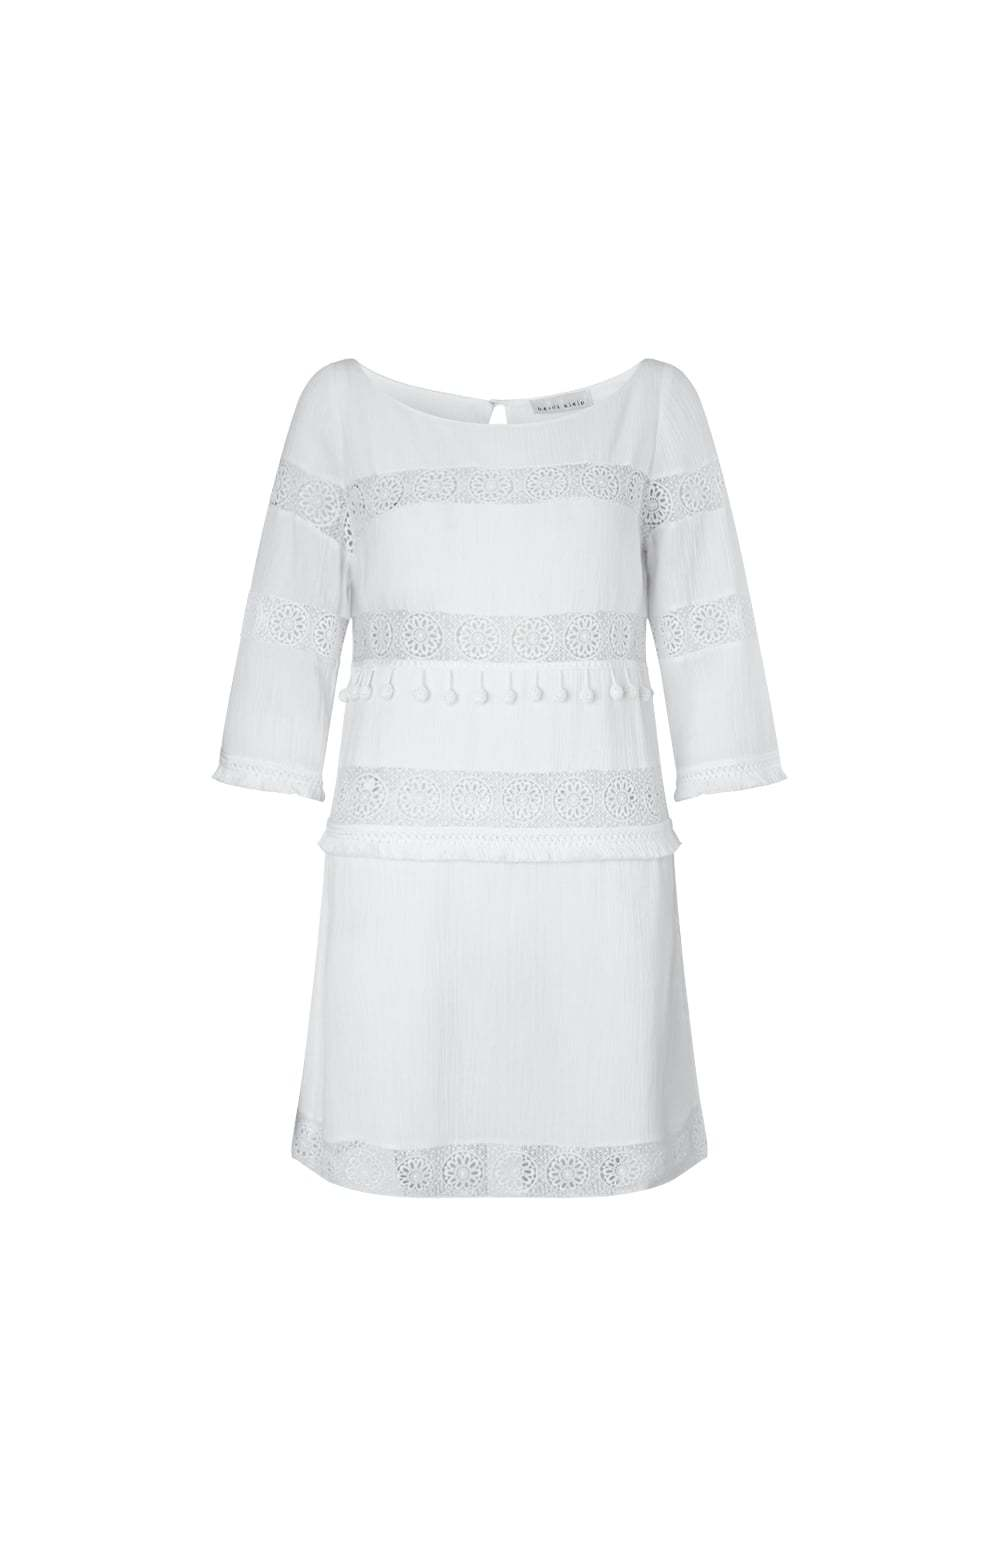 White Long Island Crochet Smock Dress Size: - style: shift; neckline: slash/boat neckline; pattern: plain; predominant colour: white; occasions: casual; length: just above the knee; fit: soft a-line; fibres: cotton - 100%; sleeve length: 3/4 length; sleeve style: standard; texture group: knits/crochet; pattern type: knitted - fine stitch; season: s/s 2016; wardrobe: basic